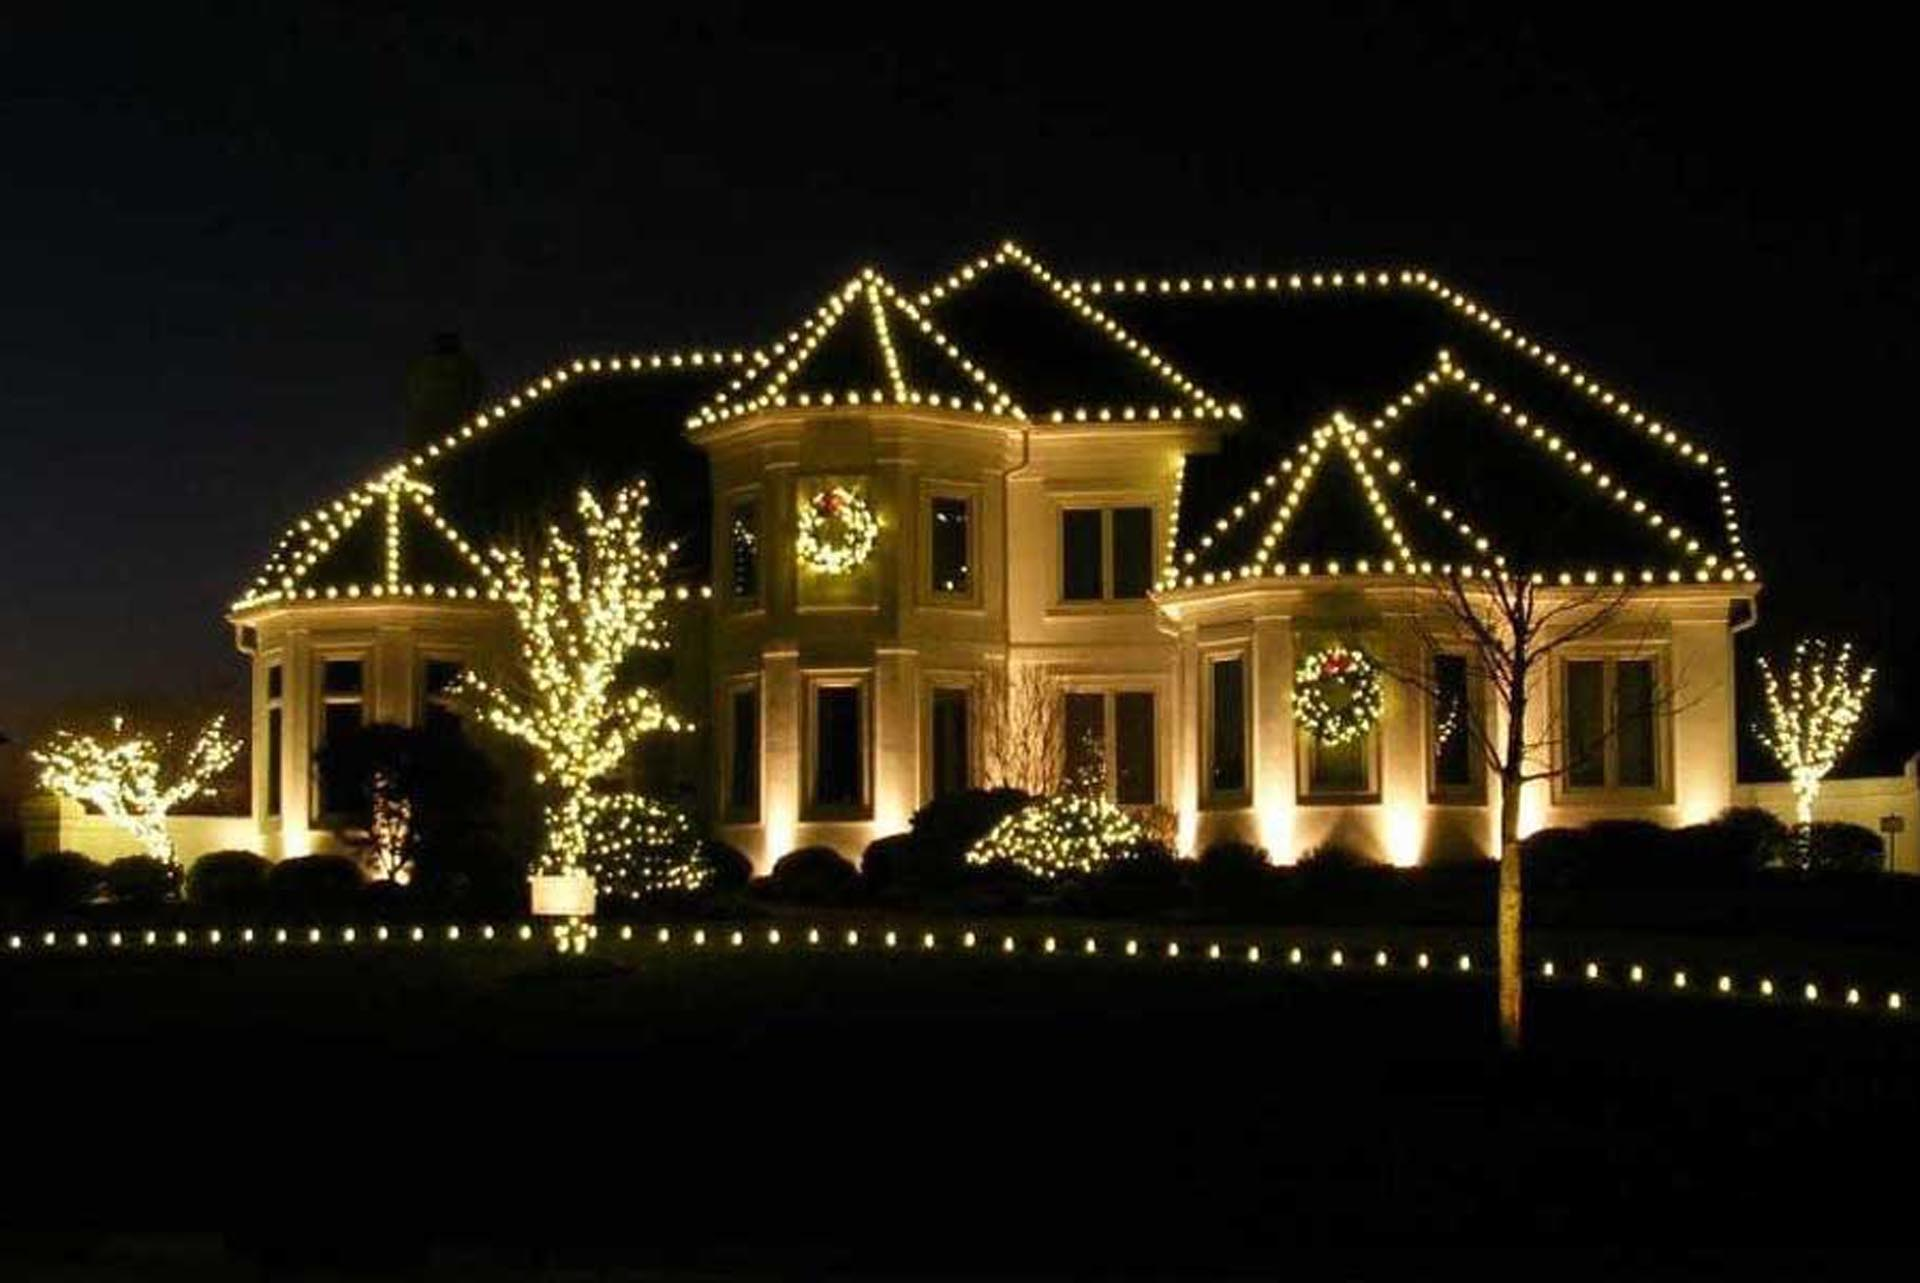 happy holidays from Twisted Oak Landscaping